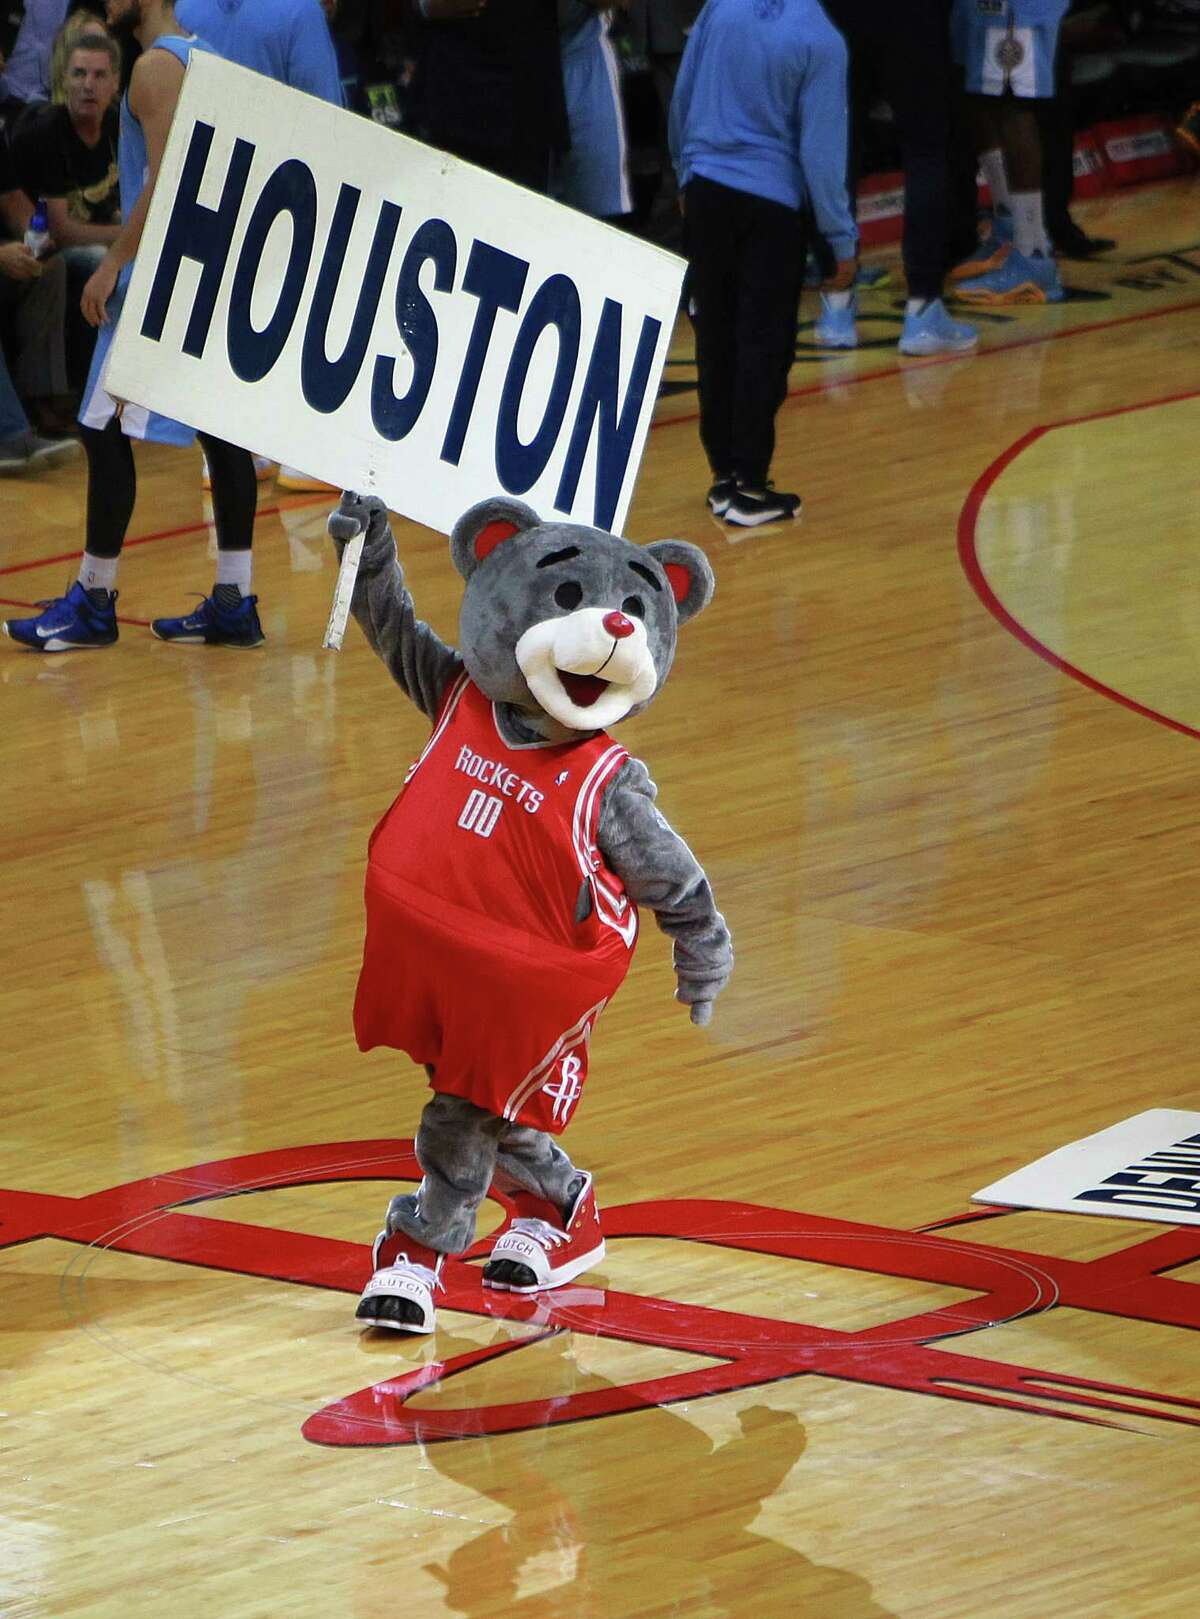 Clutch cheers on the crowd before the Houston Rockets take on the Denver Nuggets, Wednesday, Oct. 28, 2015, in Houston.( Mark Mulligan / Houston Chronicle )